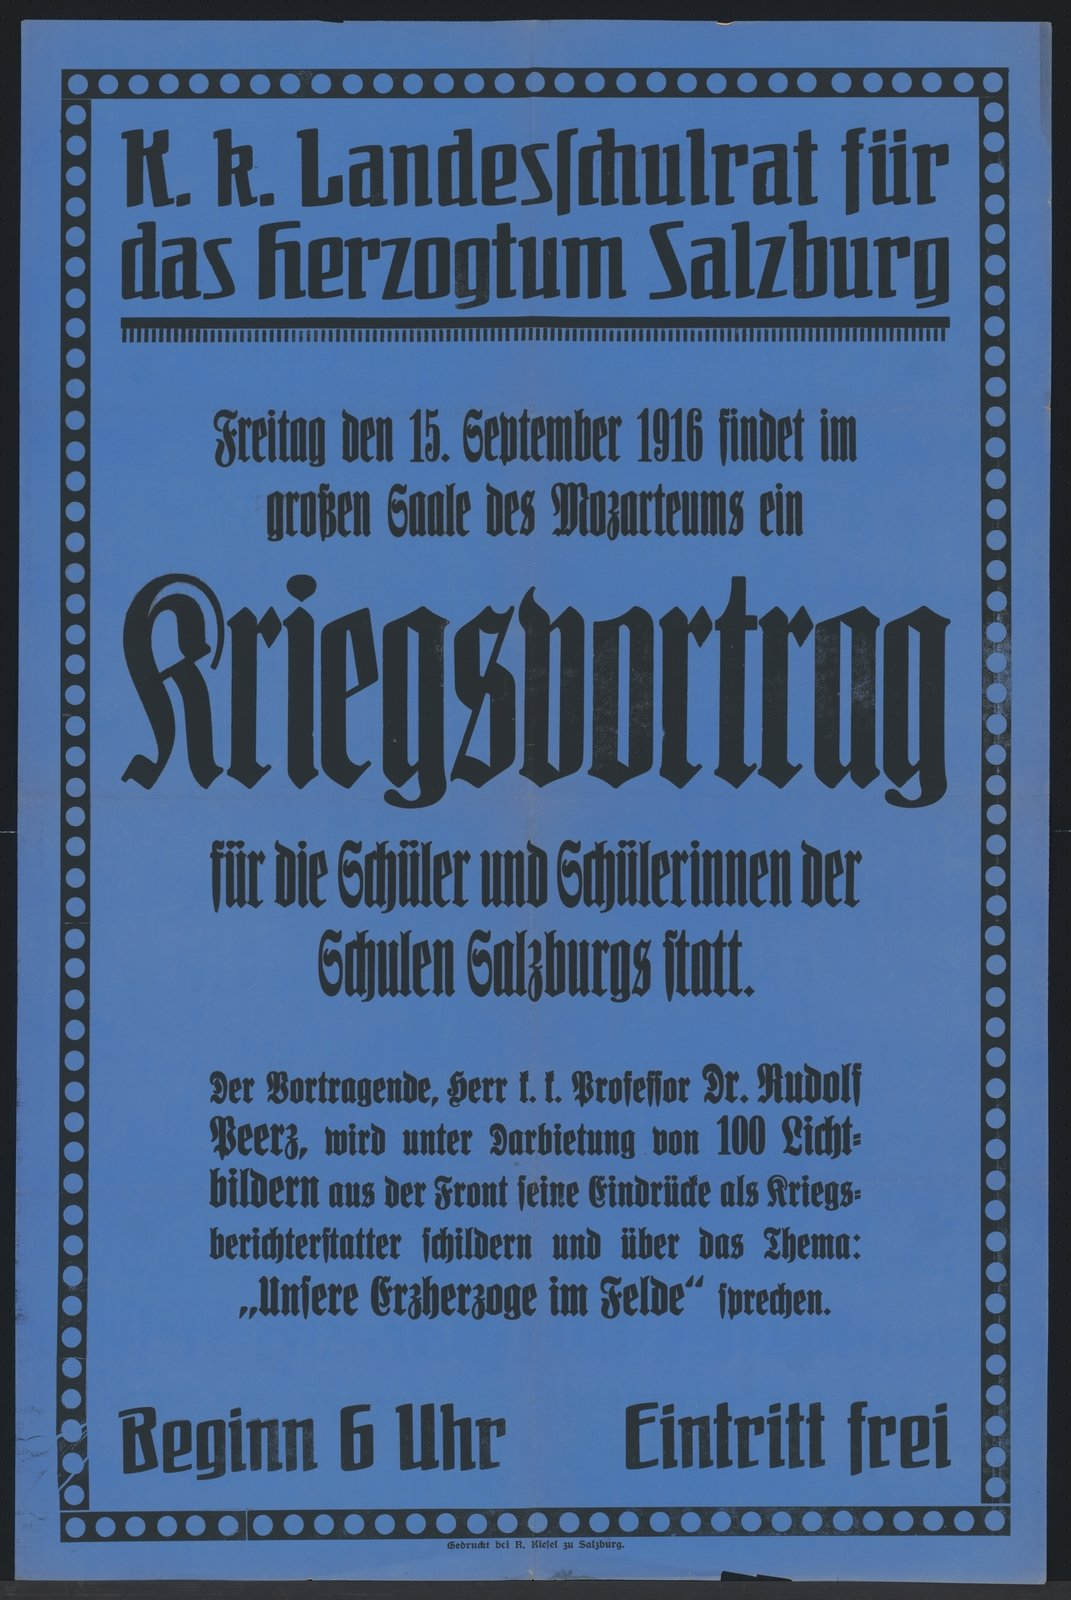 Lectures about the war were also held at schools., 1916-09 Salzburg, Österreichische Nationalbibliothek - Austrian National Library, Public Domain Mark